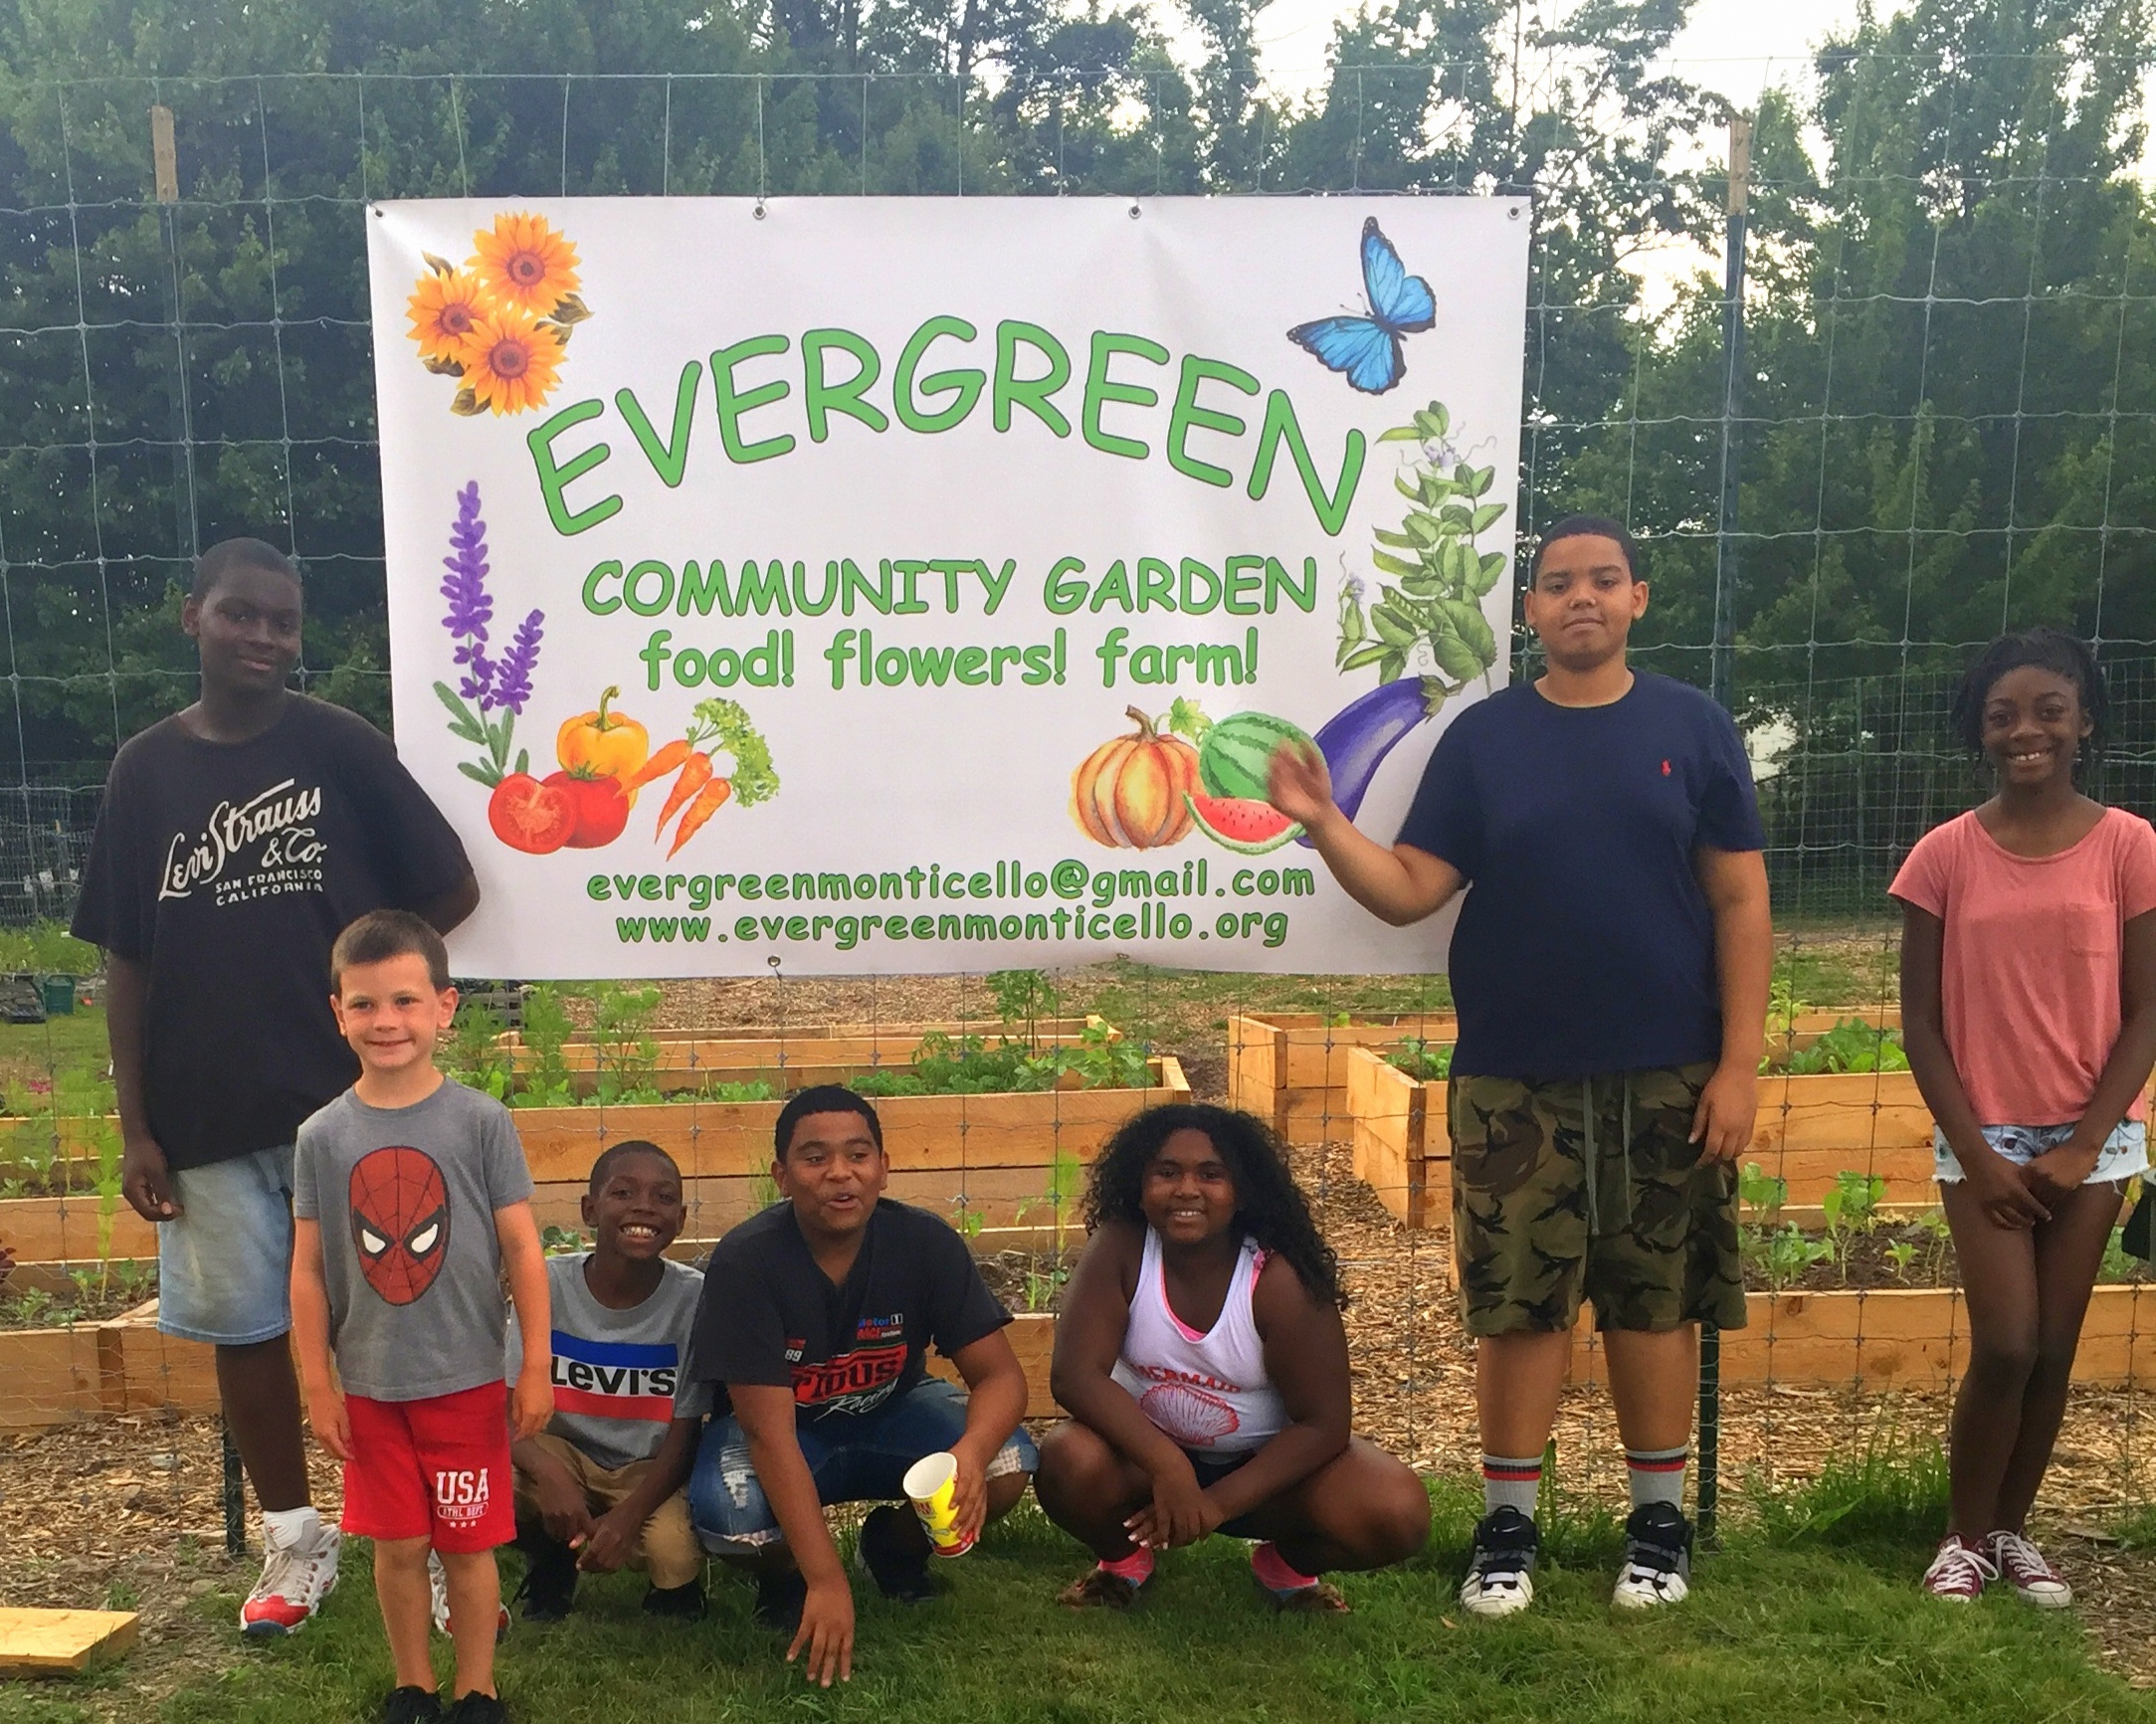 Young+Gardeners+with+Evergreen++sign.jpg